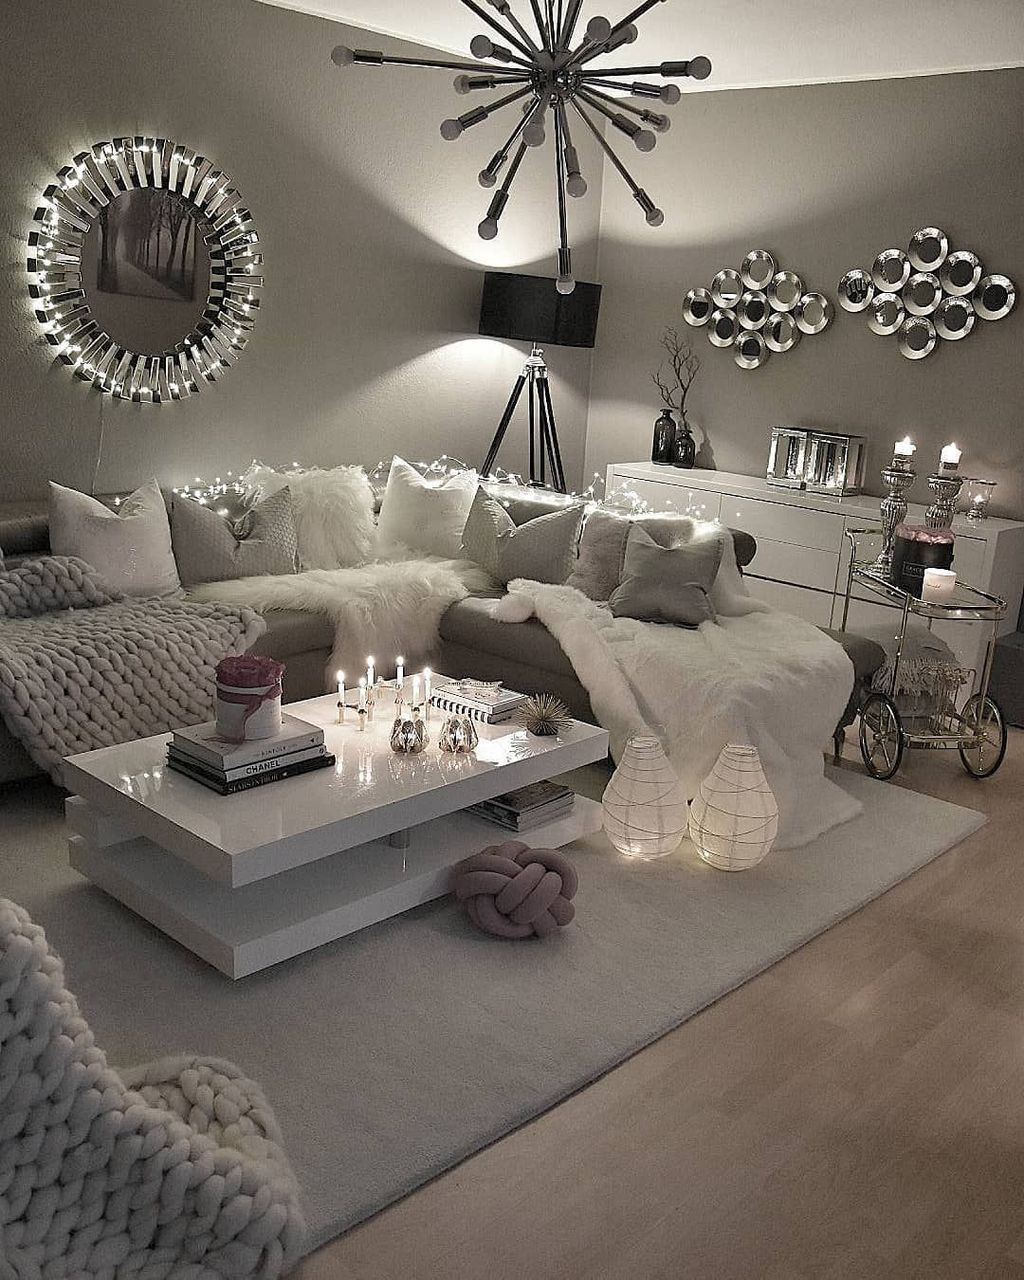 The Best Relaxing Living Room Design Ideas 02